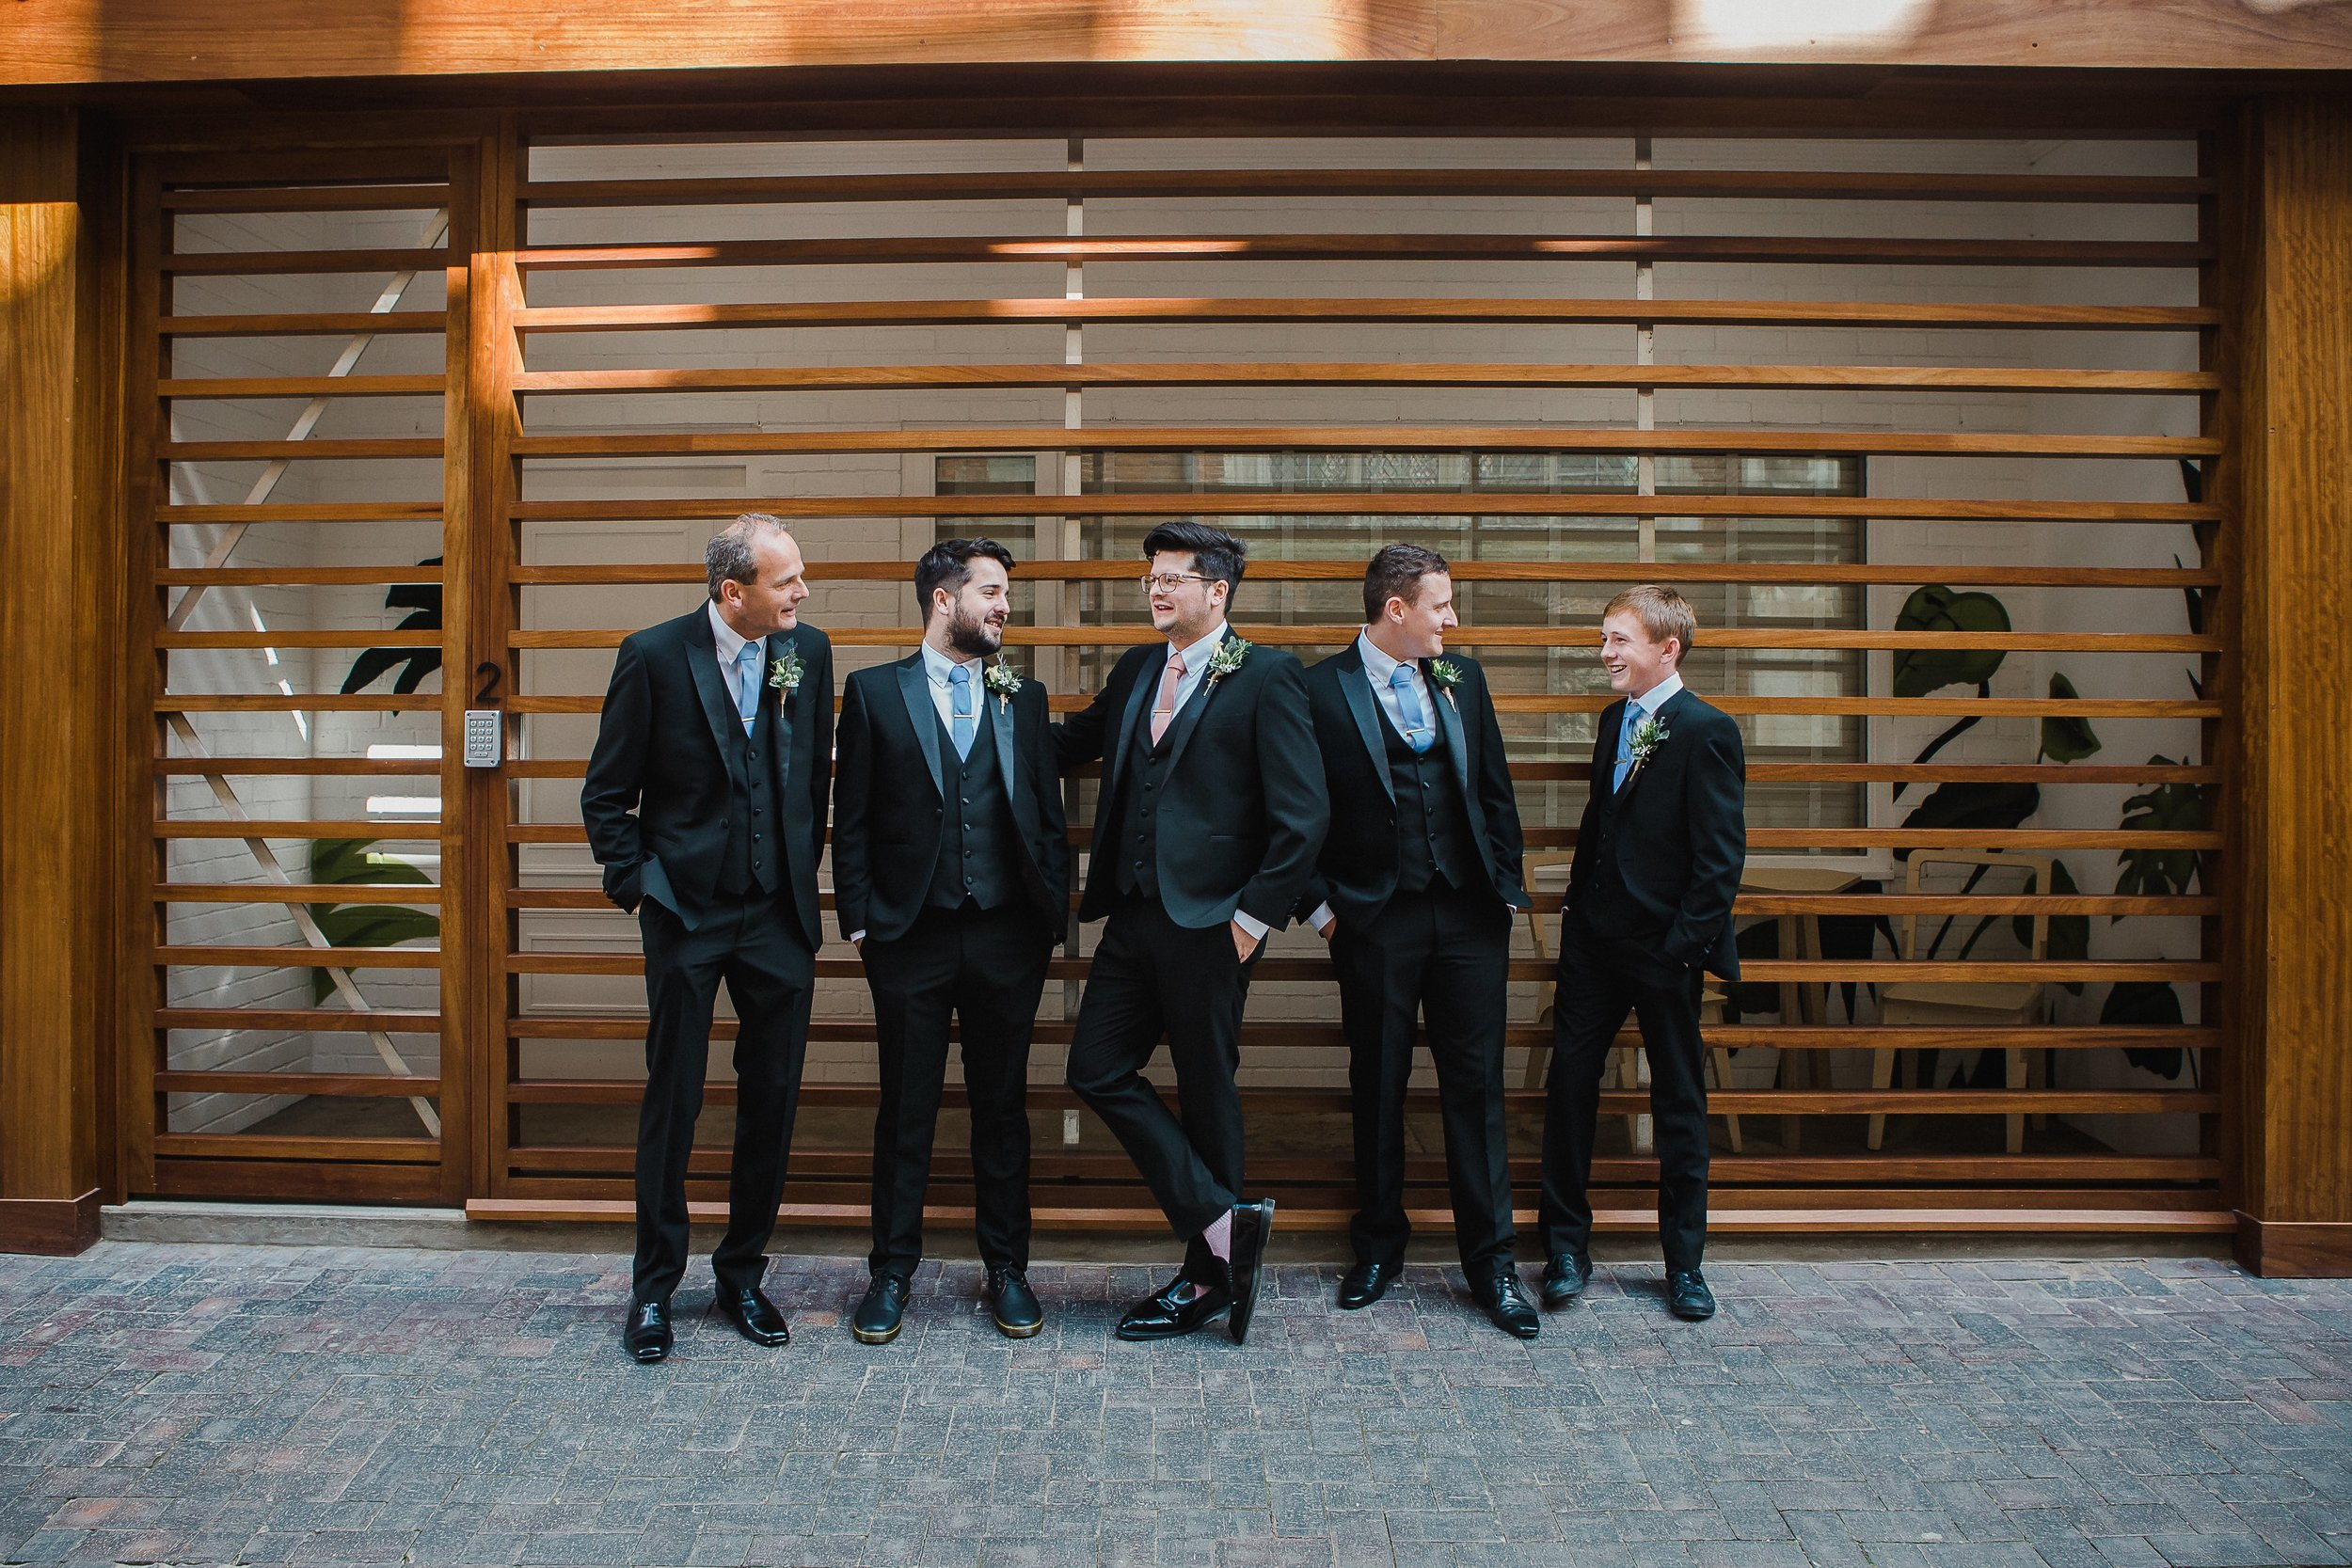 Featured: Hideout Groom, Nick (middle) & groomsmen outside Hideout Hotel